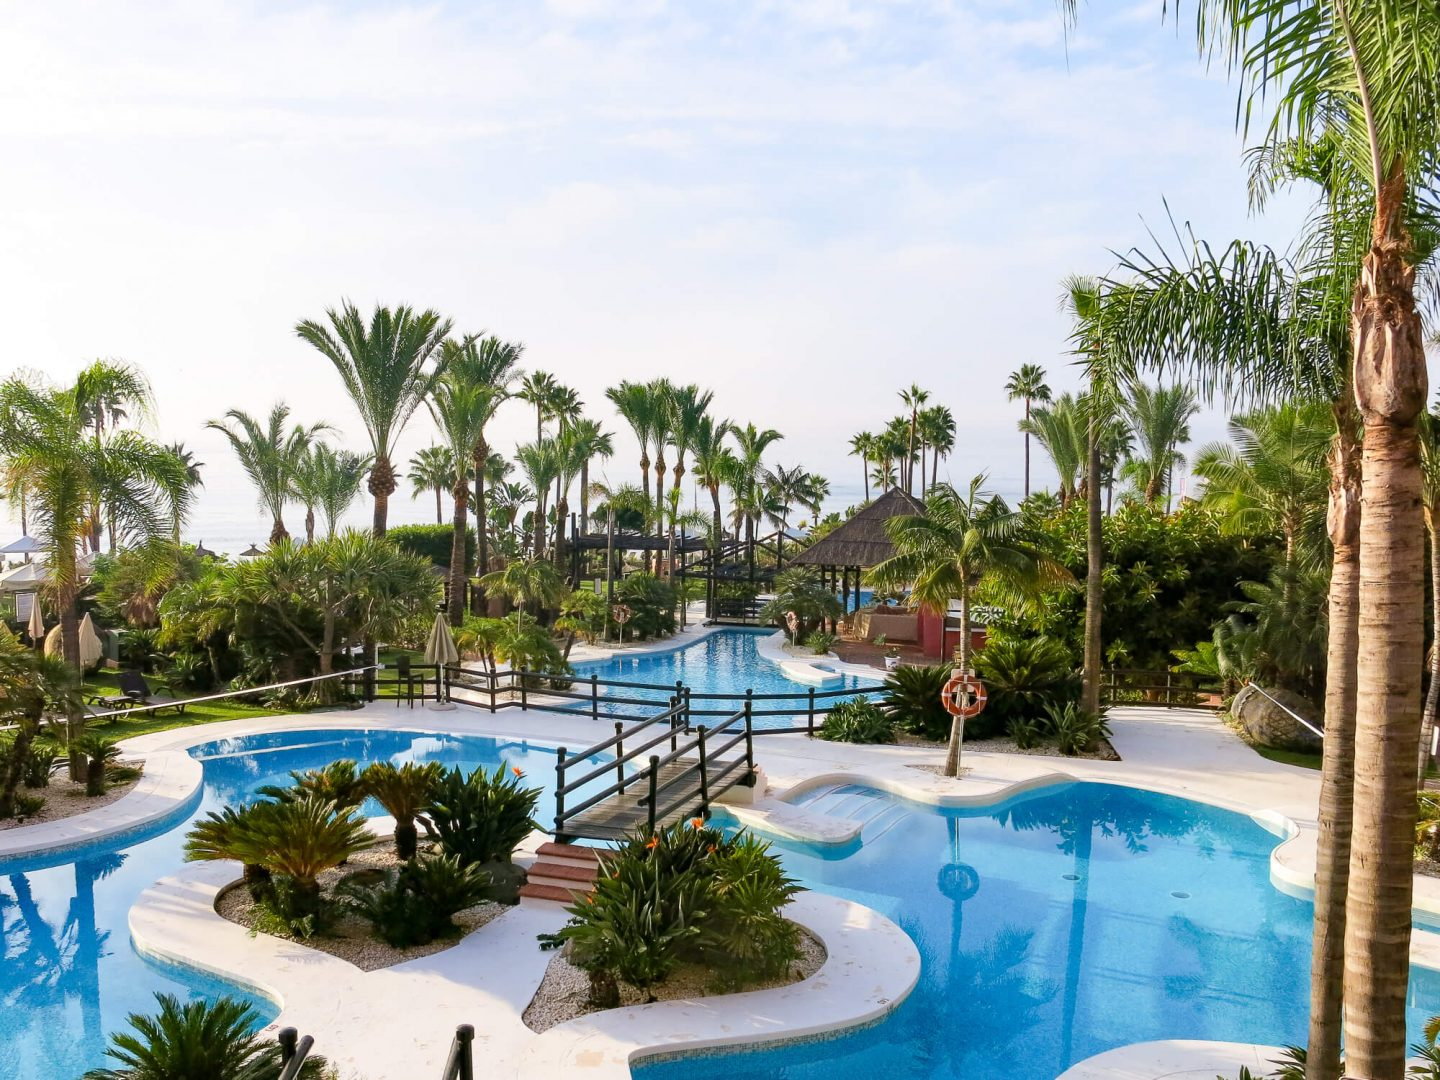 The swimming pool and gardens at Kempinski Hotel Bahía, Spain. 5 star luxury hotel near Marbella.